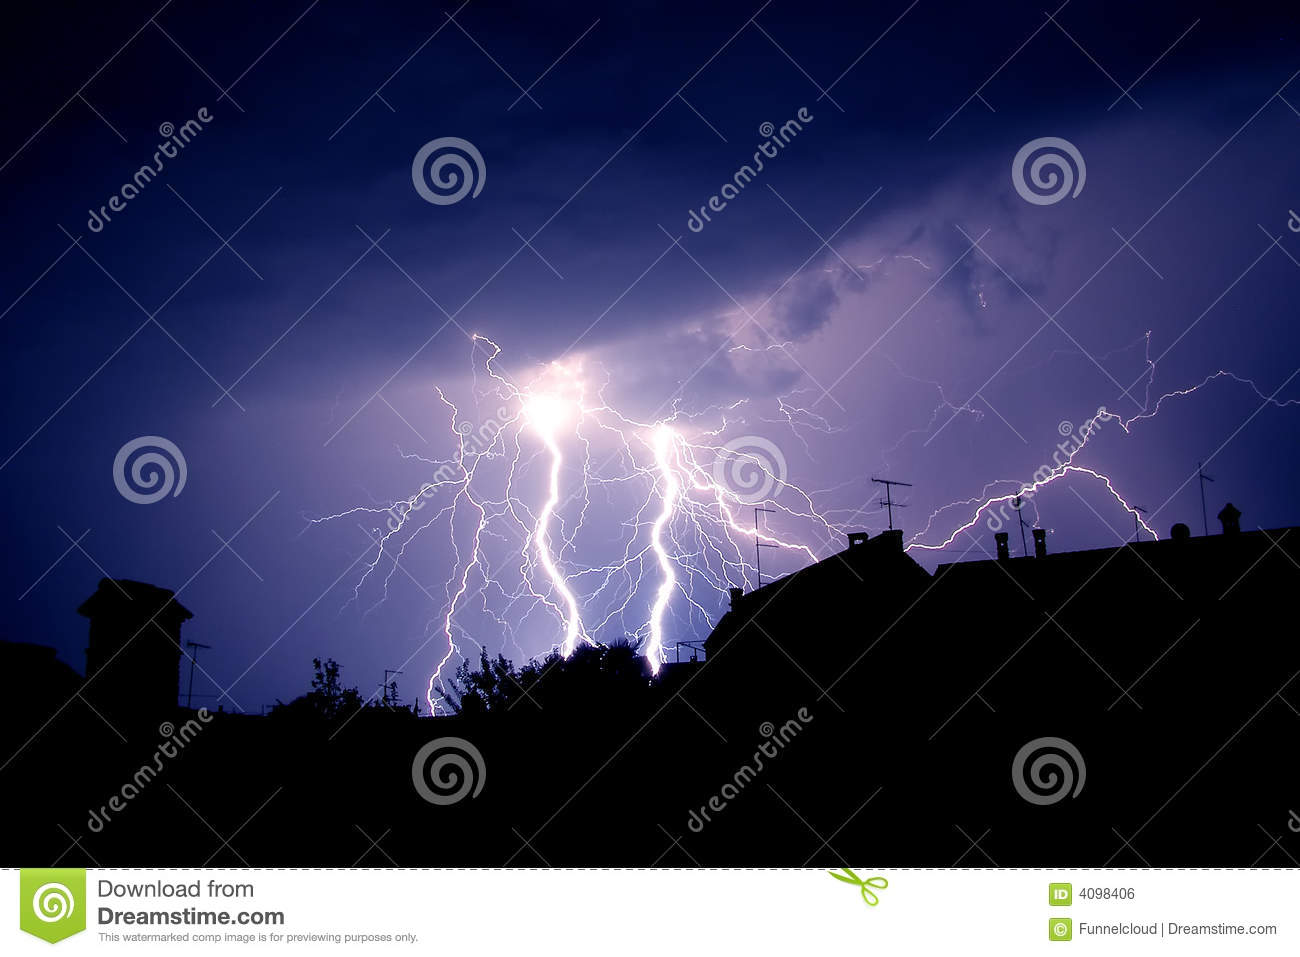 an analysis of lightning in atmospheric electricity and meteorology Comecap 2018 aims to bring together researchers in the areas of meteorology, climatology and atmospheric physics, as well as to present methodologies, modeling tools and theoretical.